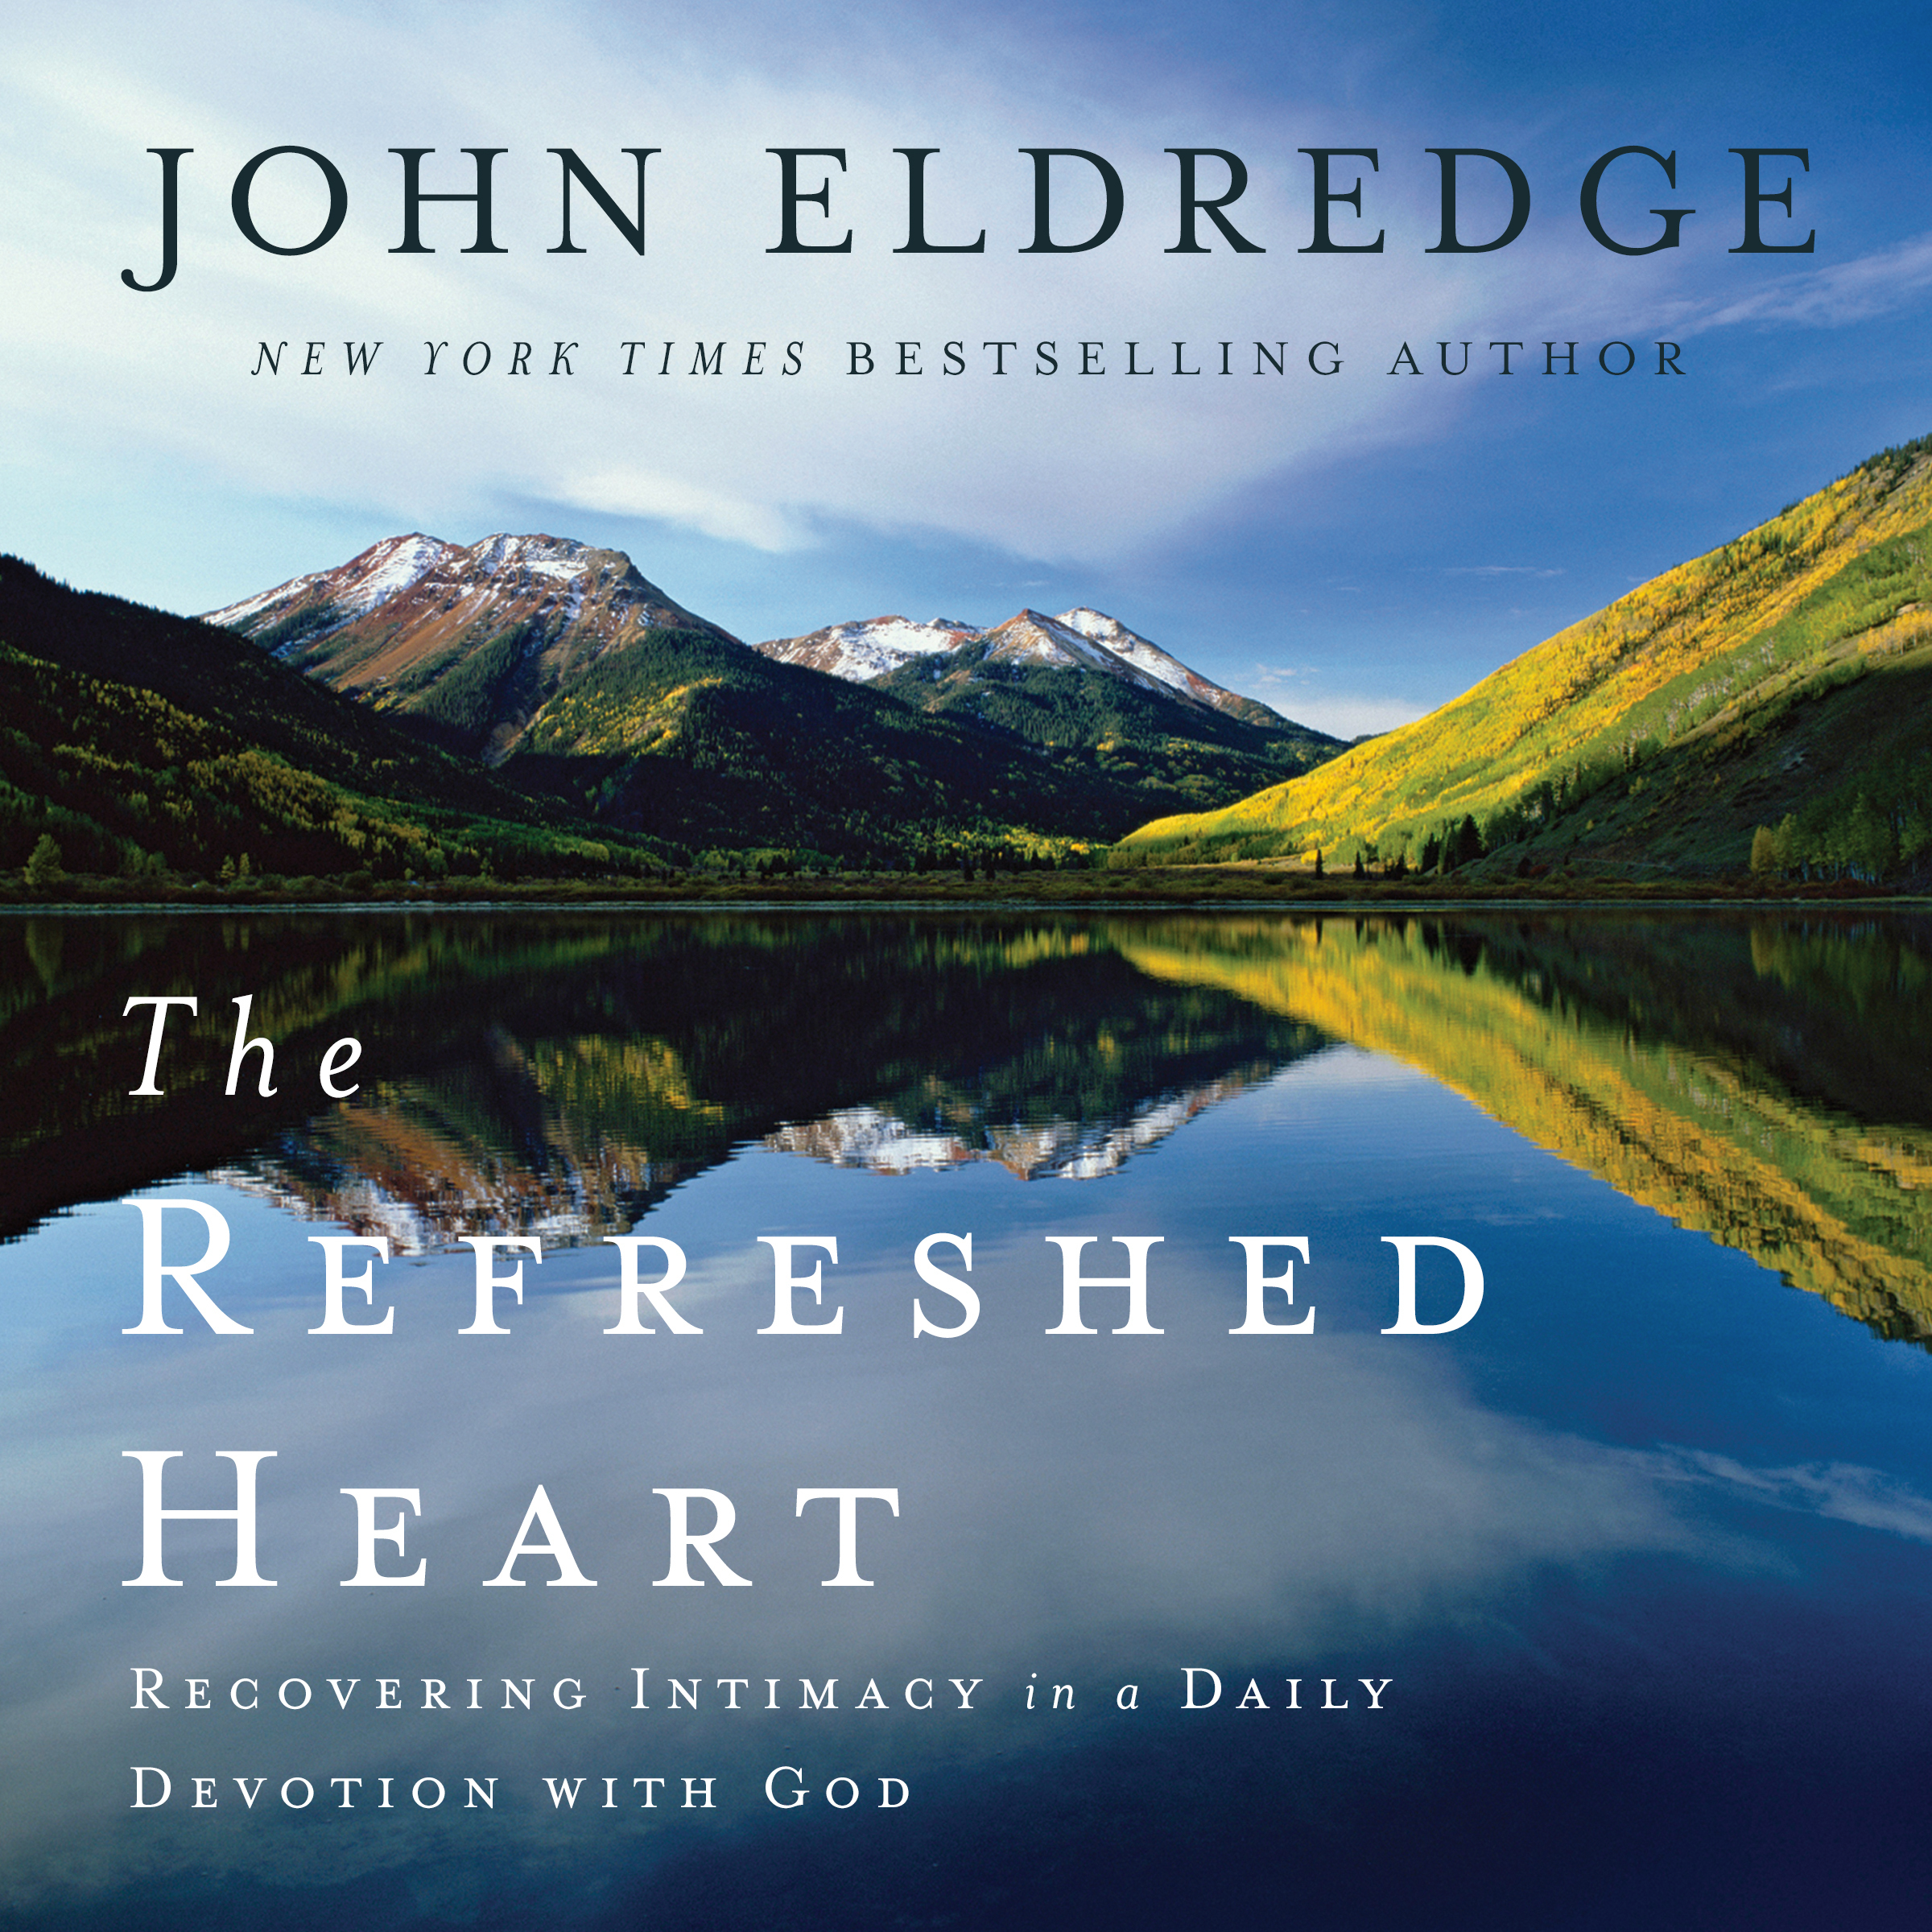 Printable The Refreshed Heart: Recovering Intimacy in a Daily Devotion With God Audiobook Cover Art